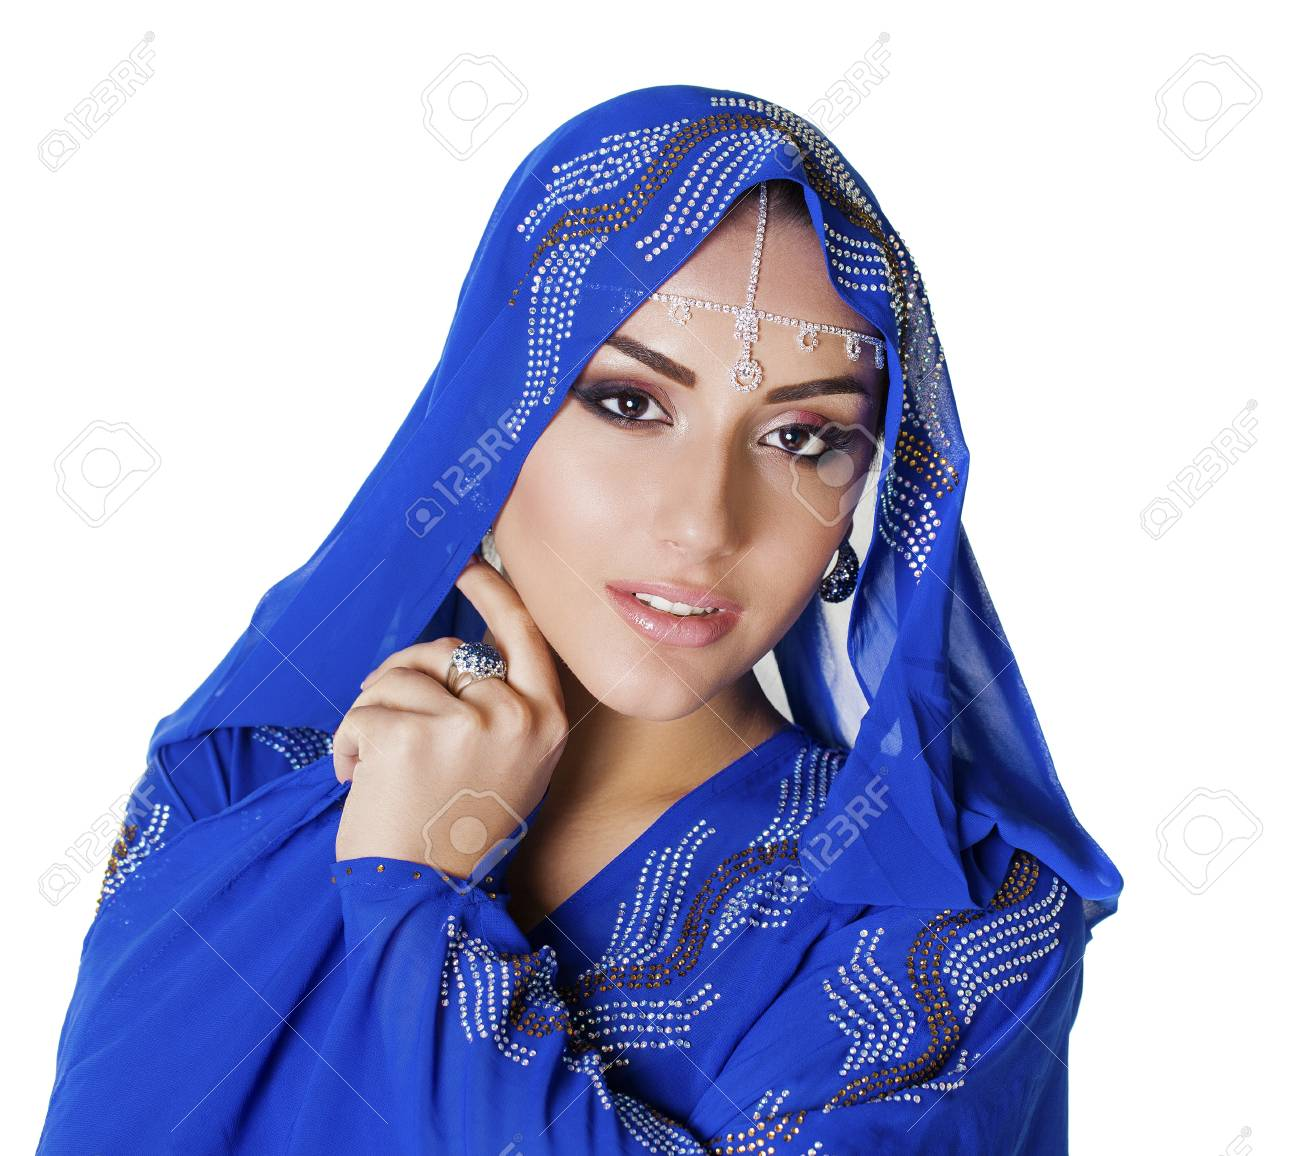 0bd283af88 Stock Photo - Young traditional Asian Indian woman in indian blue sari,  isolated on white background